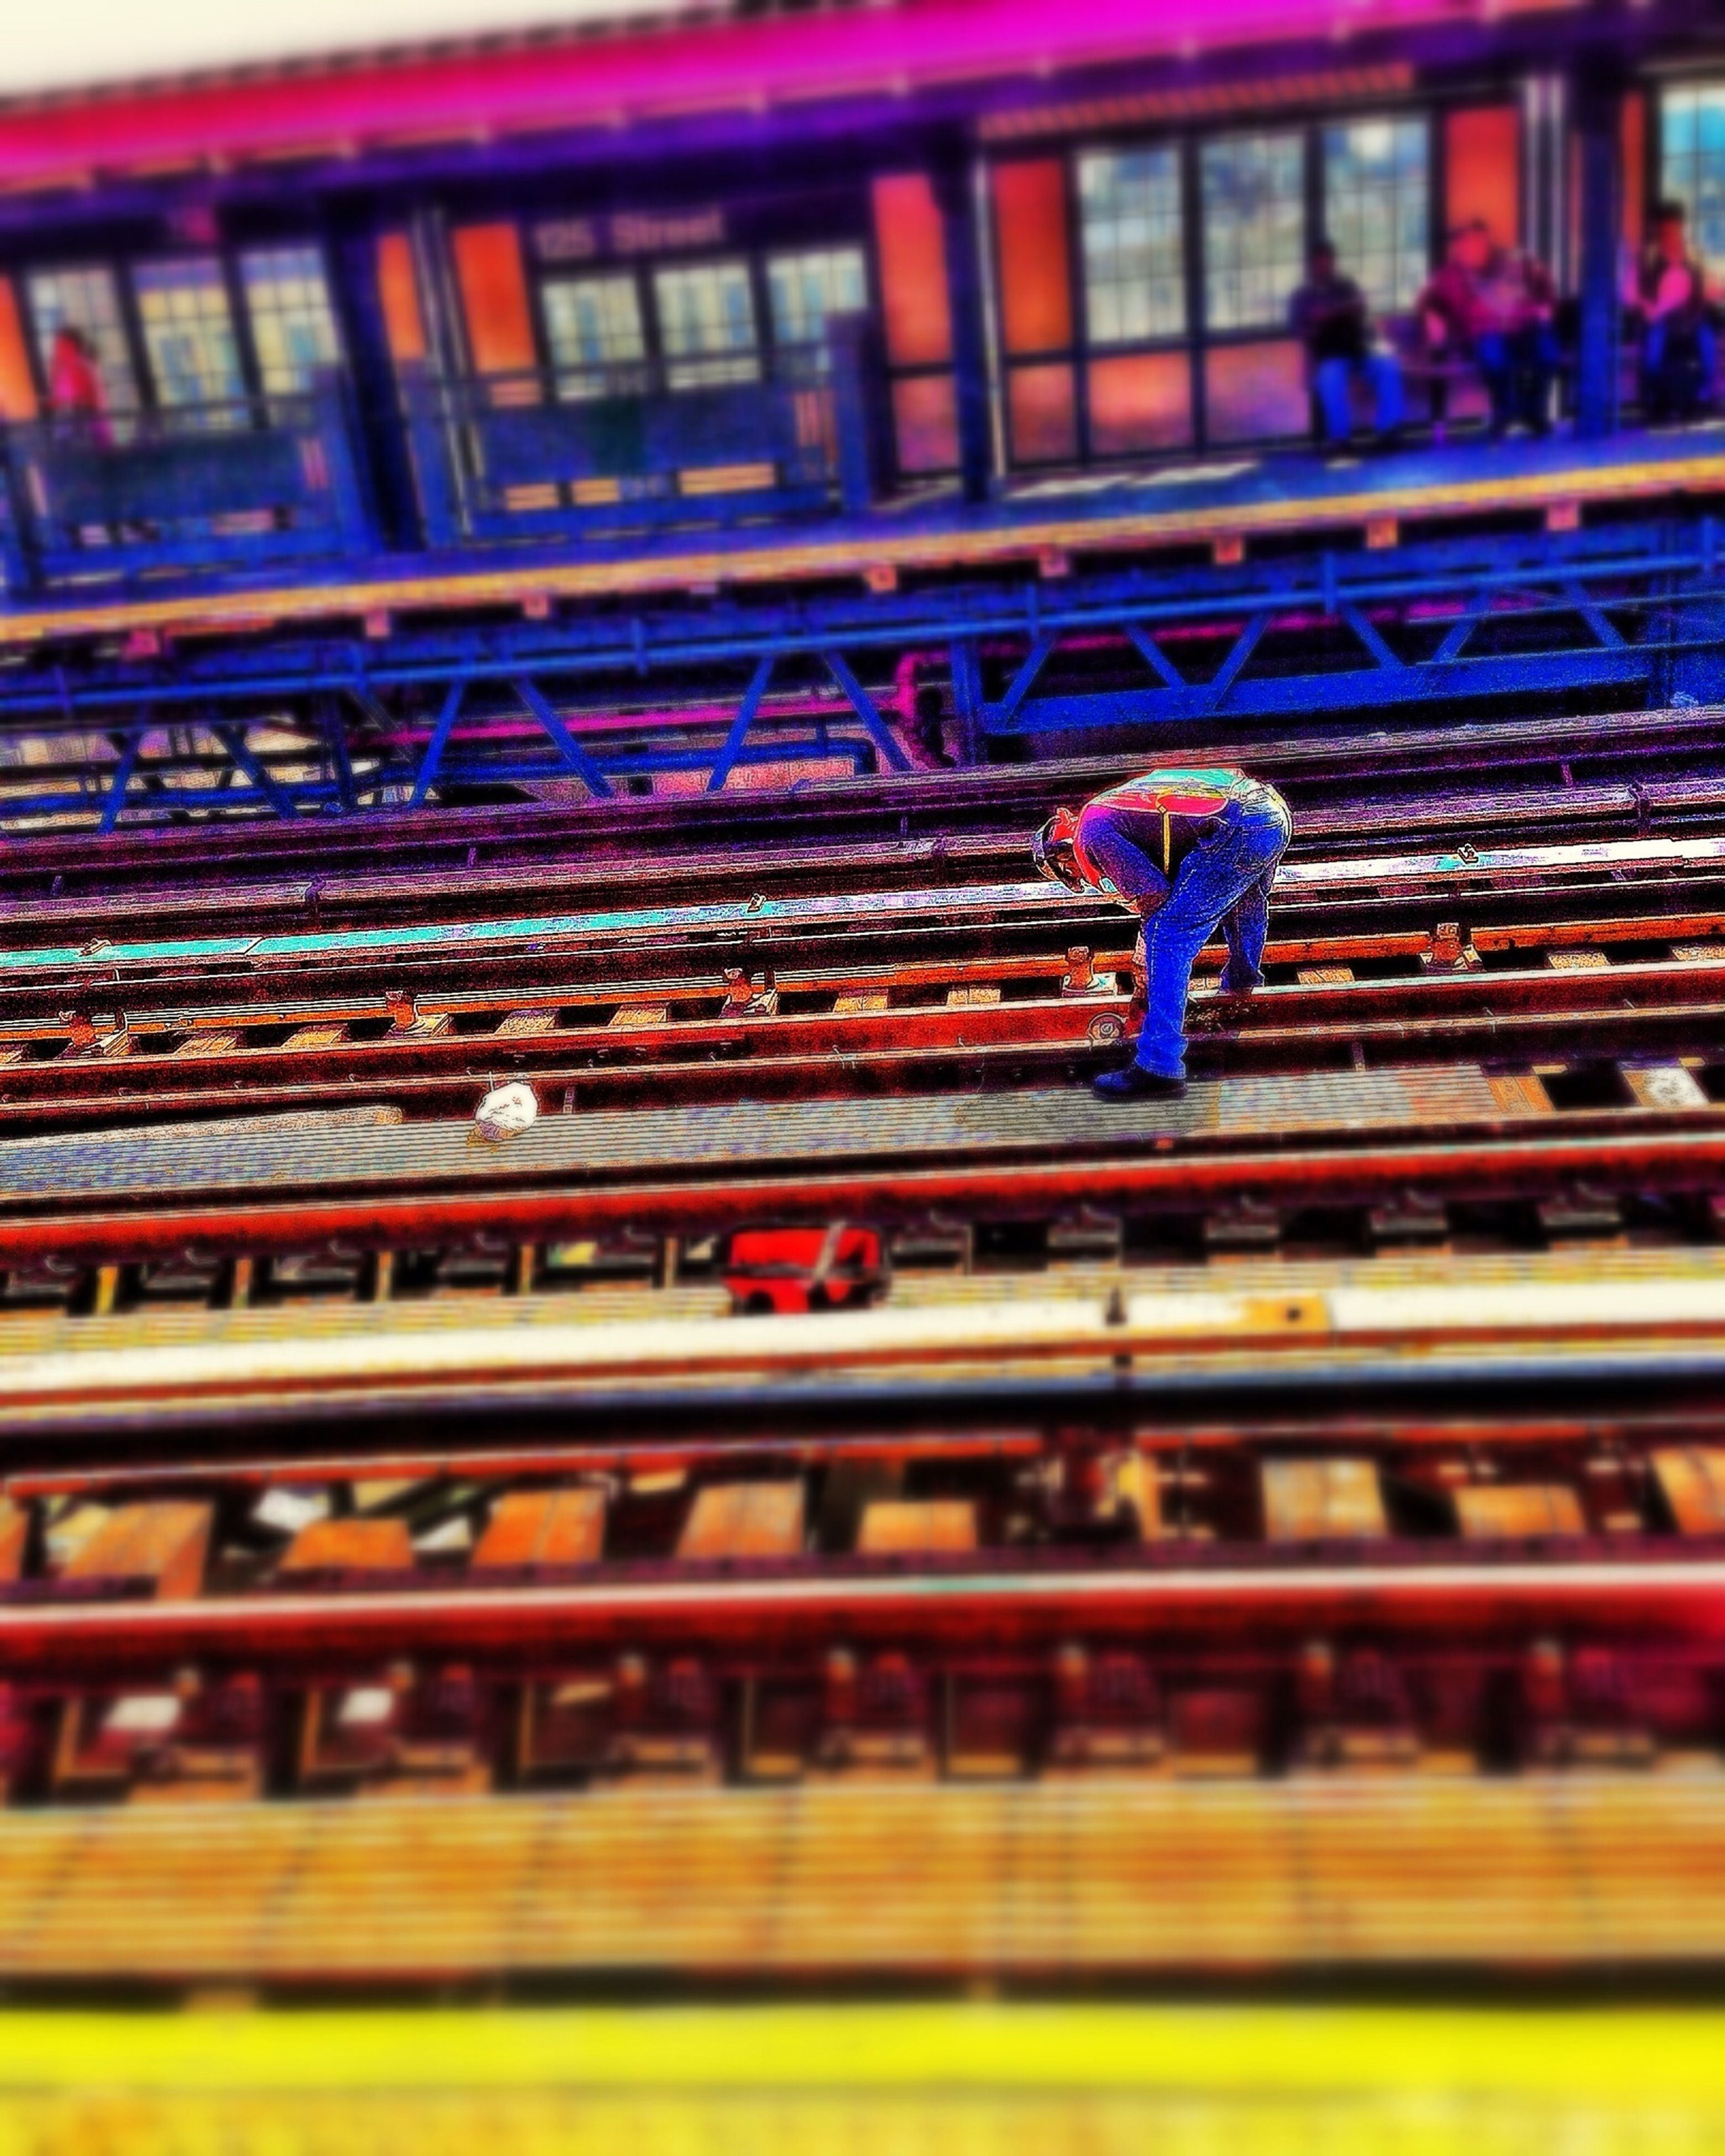 built structure, architecture, building exterior, motion, blurred motion, railing, selective focus, incidental people, long exposure, reflection, multi colored, outdoors, focus on foreground, steps, full length, side view, night, city